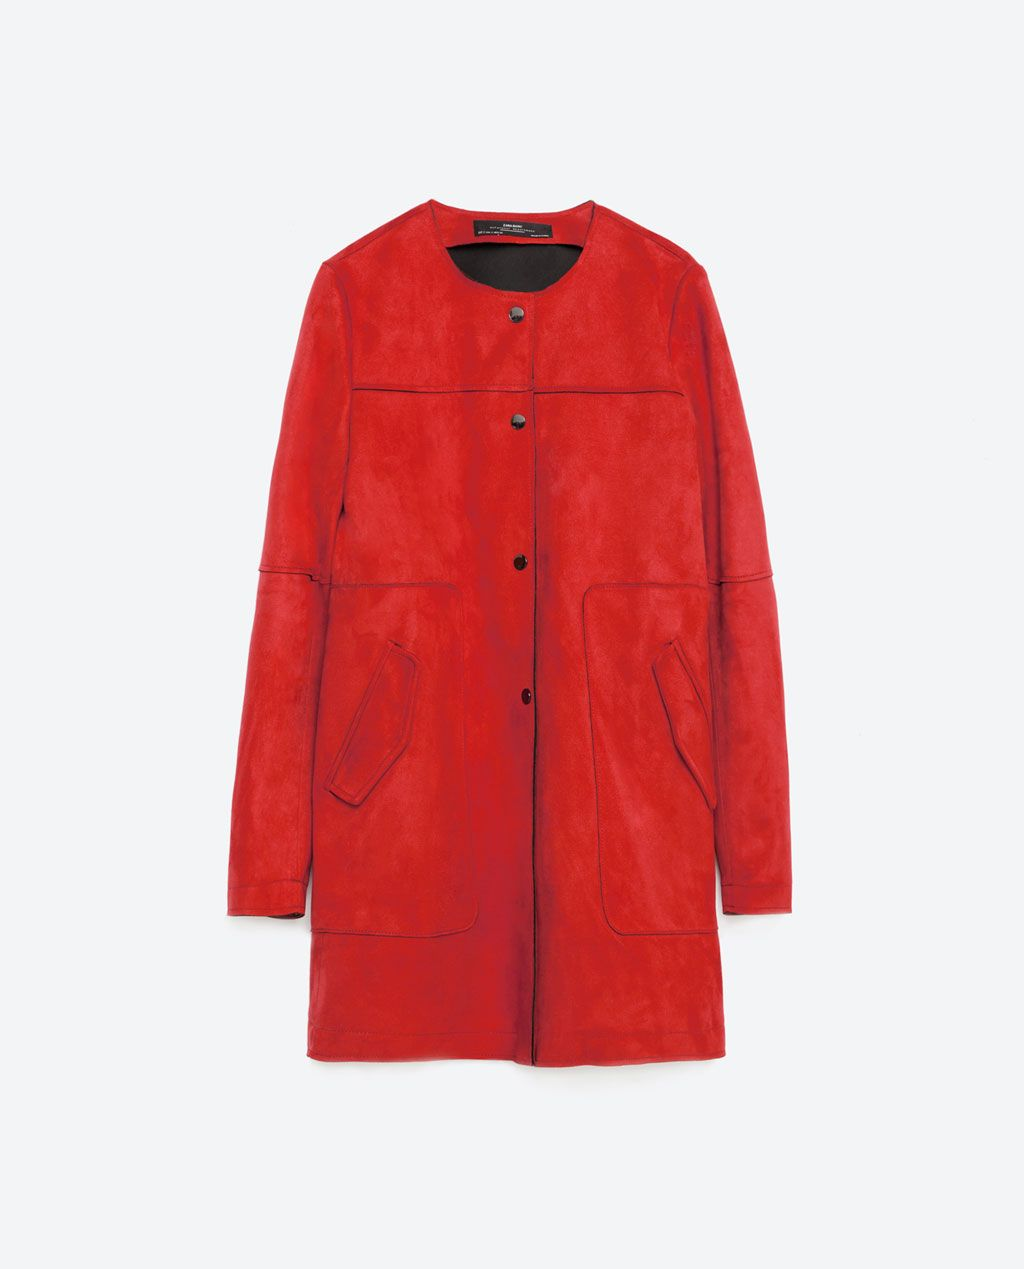 c5edd3a3 Image 8 of RED SUEDE EFFECT COAT from Zara | JACKET